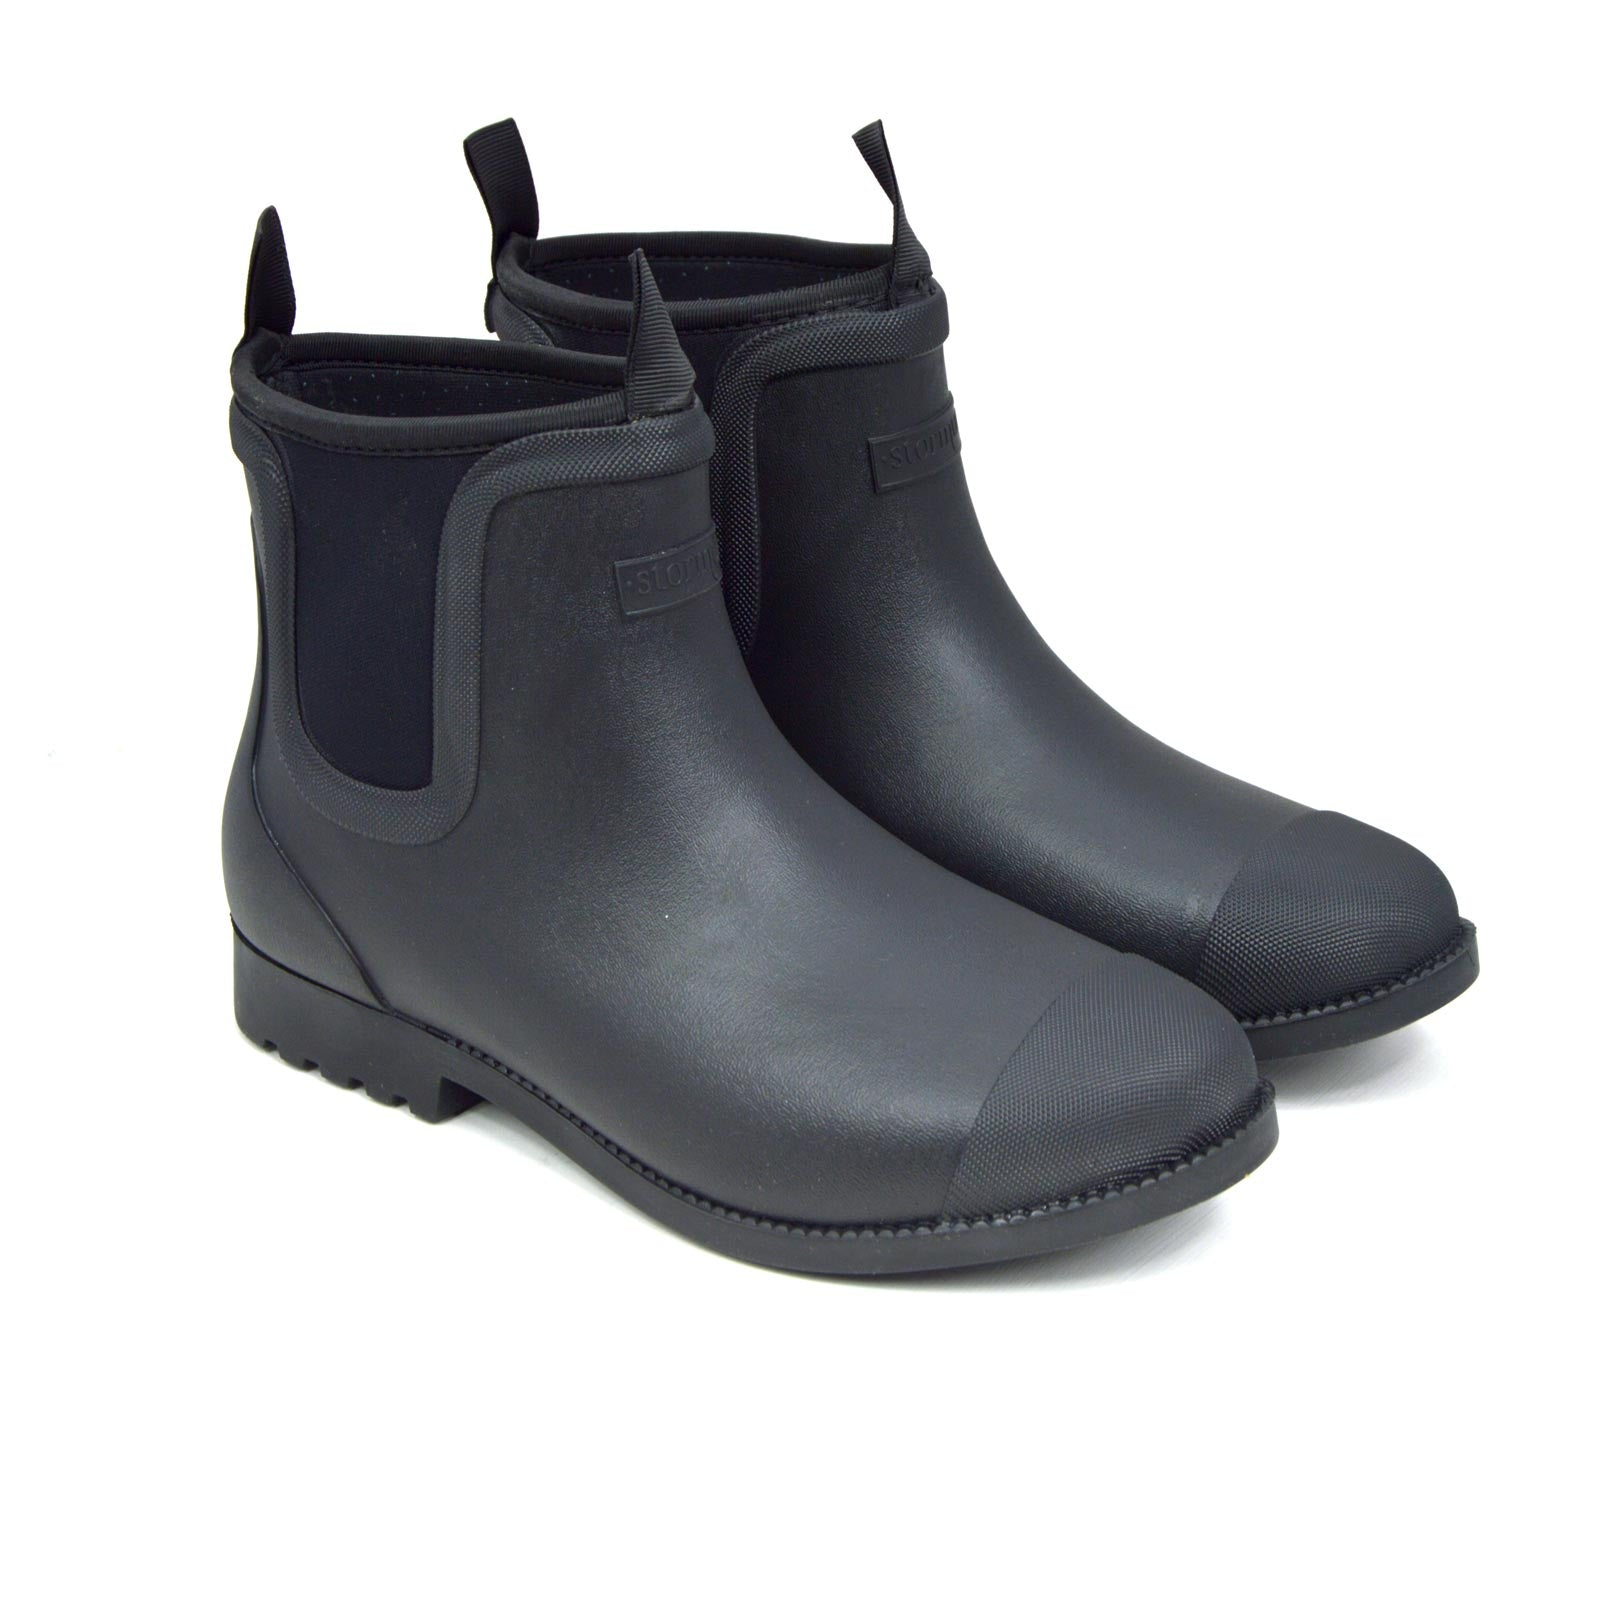 Original Gumboot Neo Chelsea Black